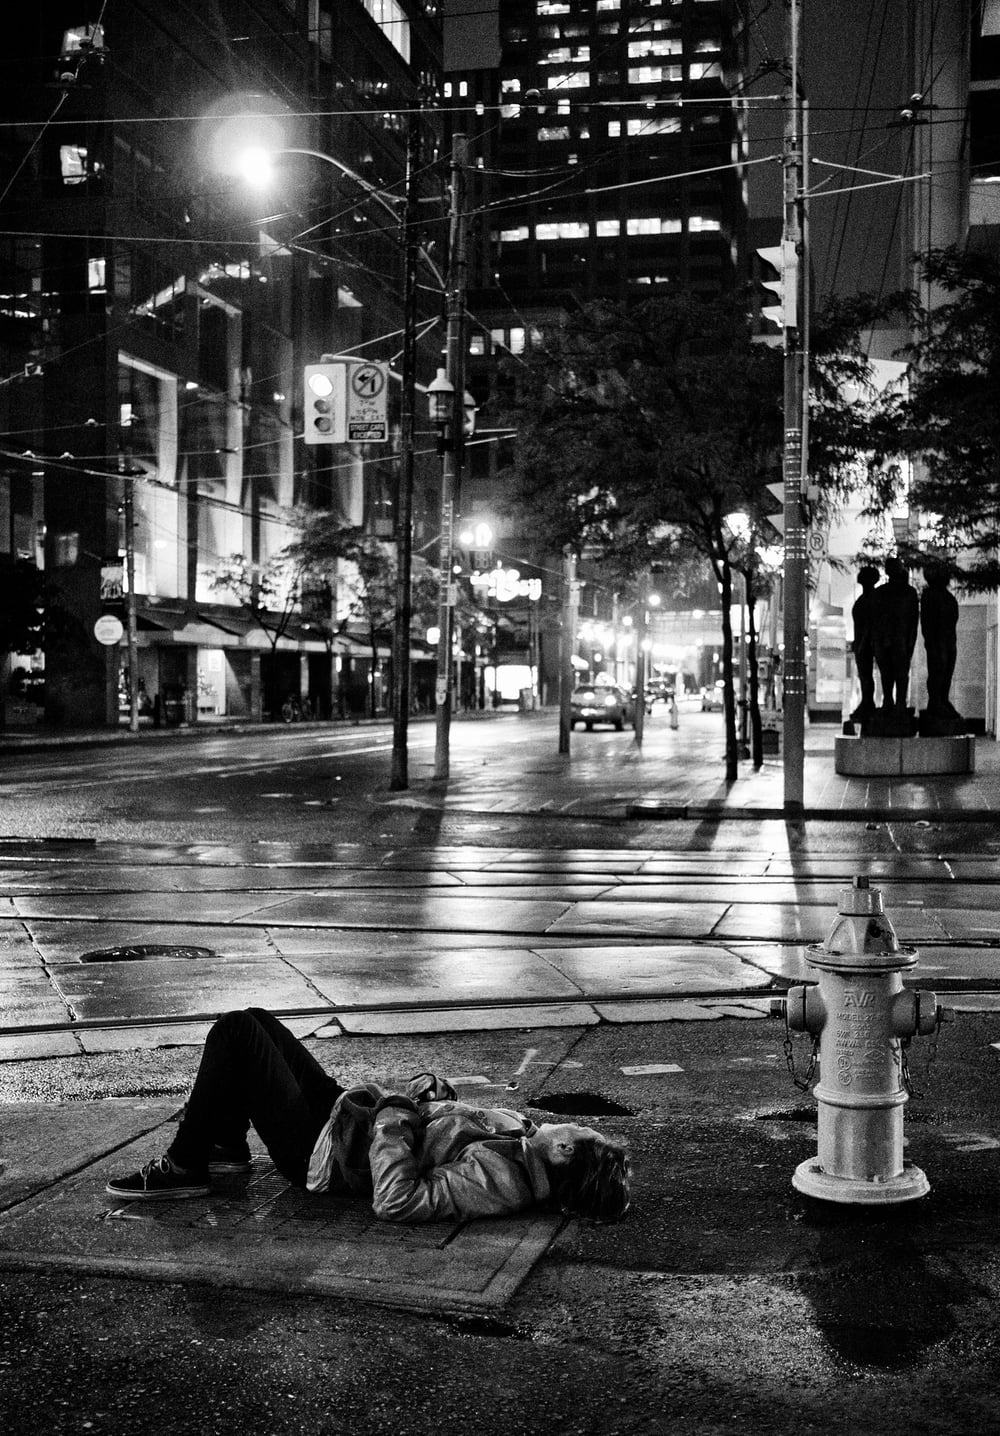 homeless_asleep_rain_night_queen-victoria_01.jpg